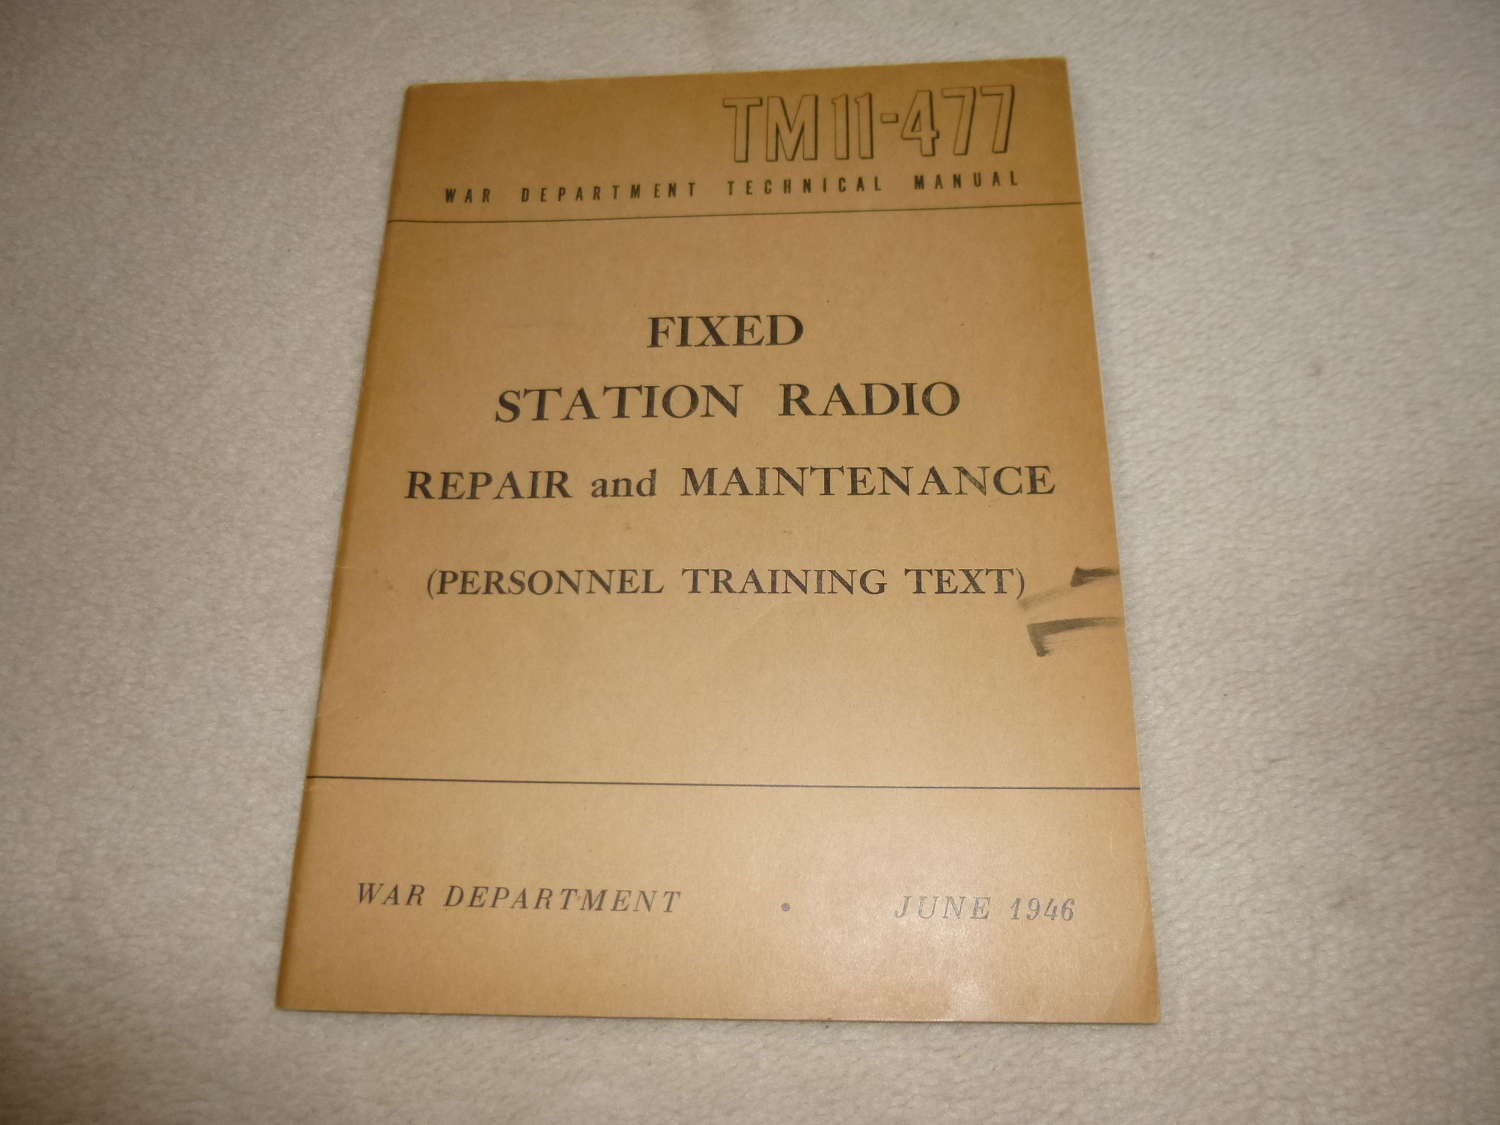 US Army TM11-477 Repair and Maintenance Manual